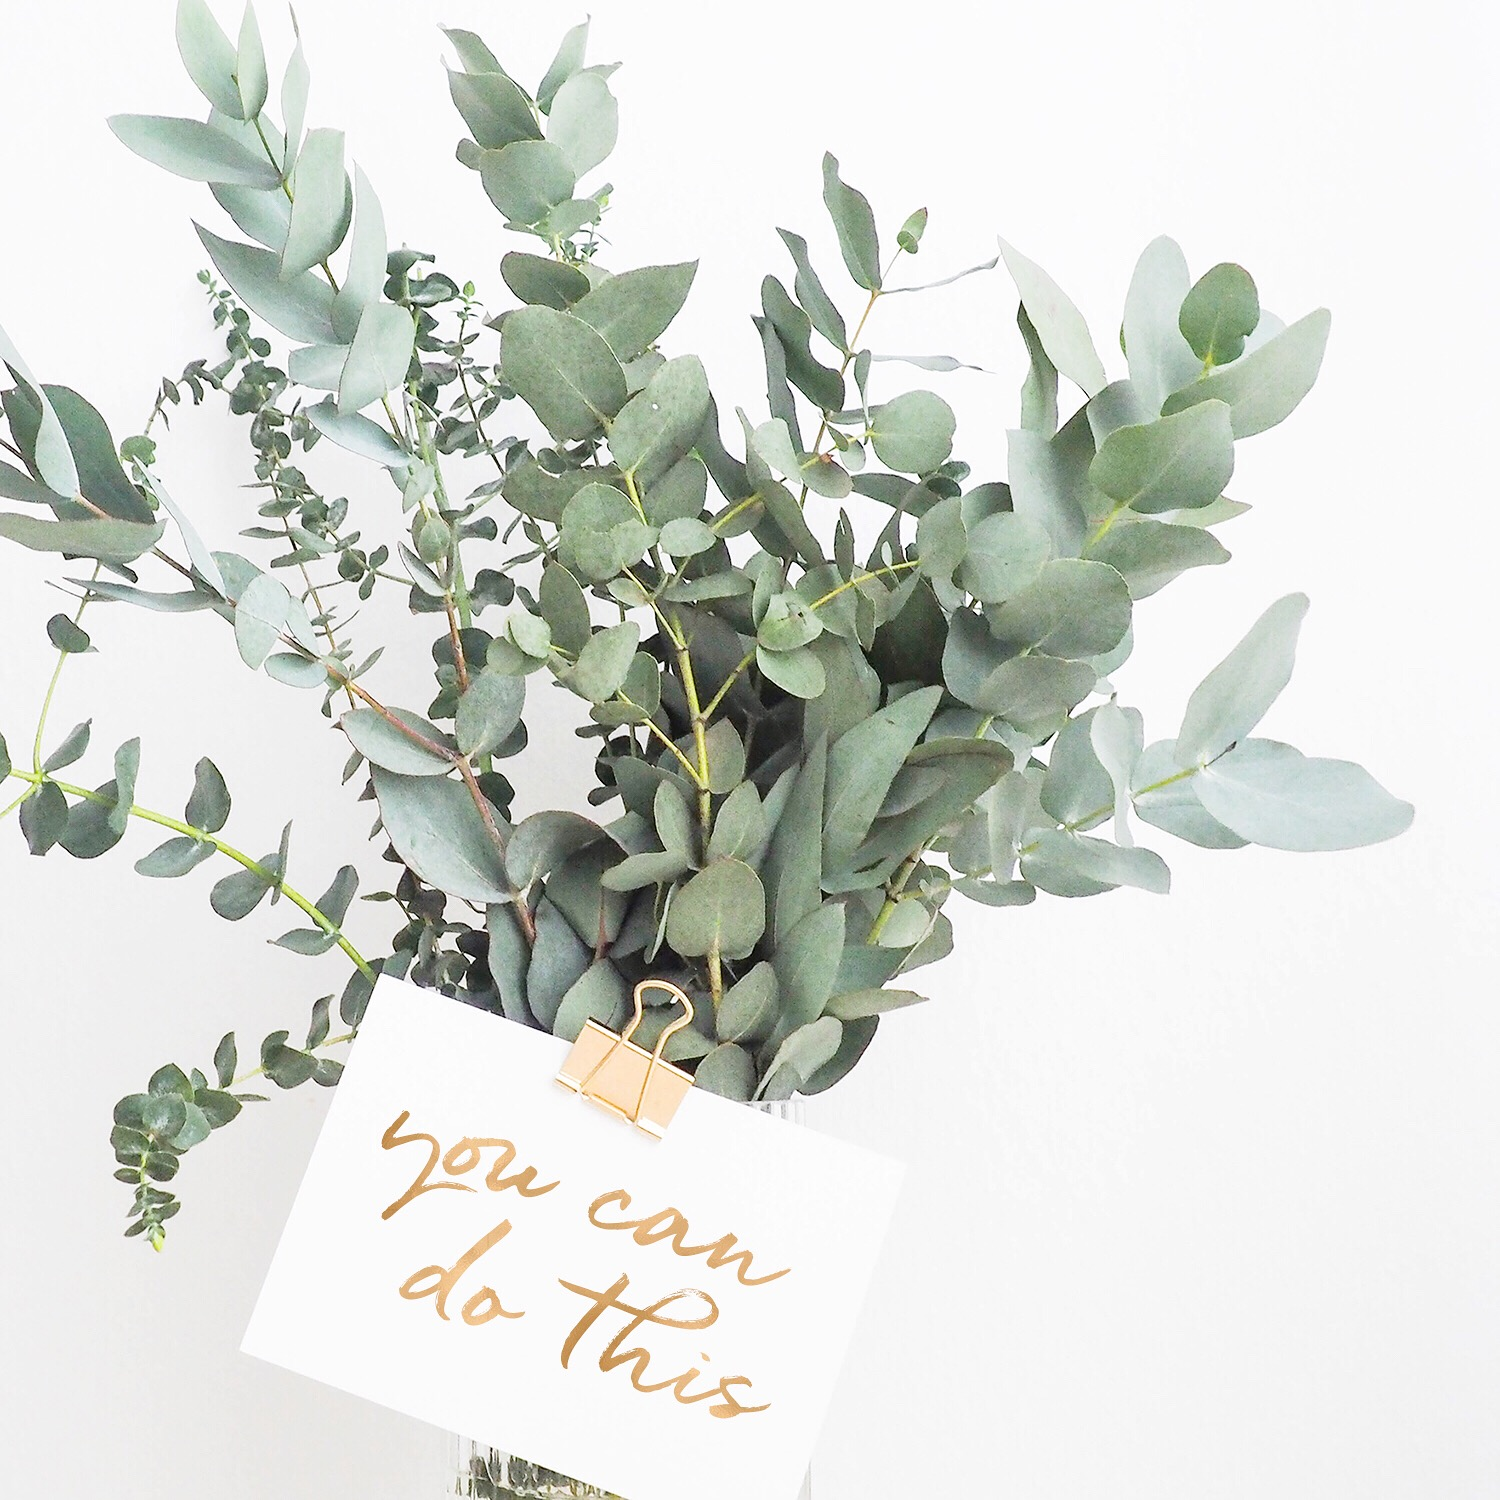 you can do this | Social Media Freebie | Akula Kreative (photo by Helena Hertz)